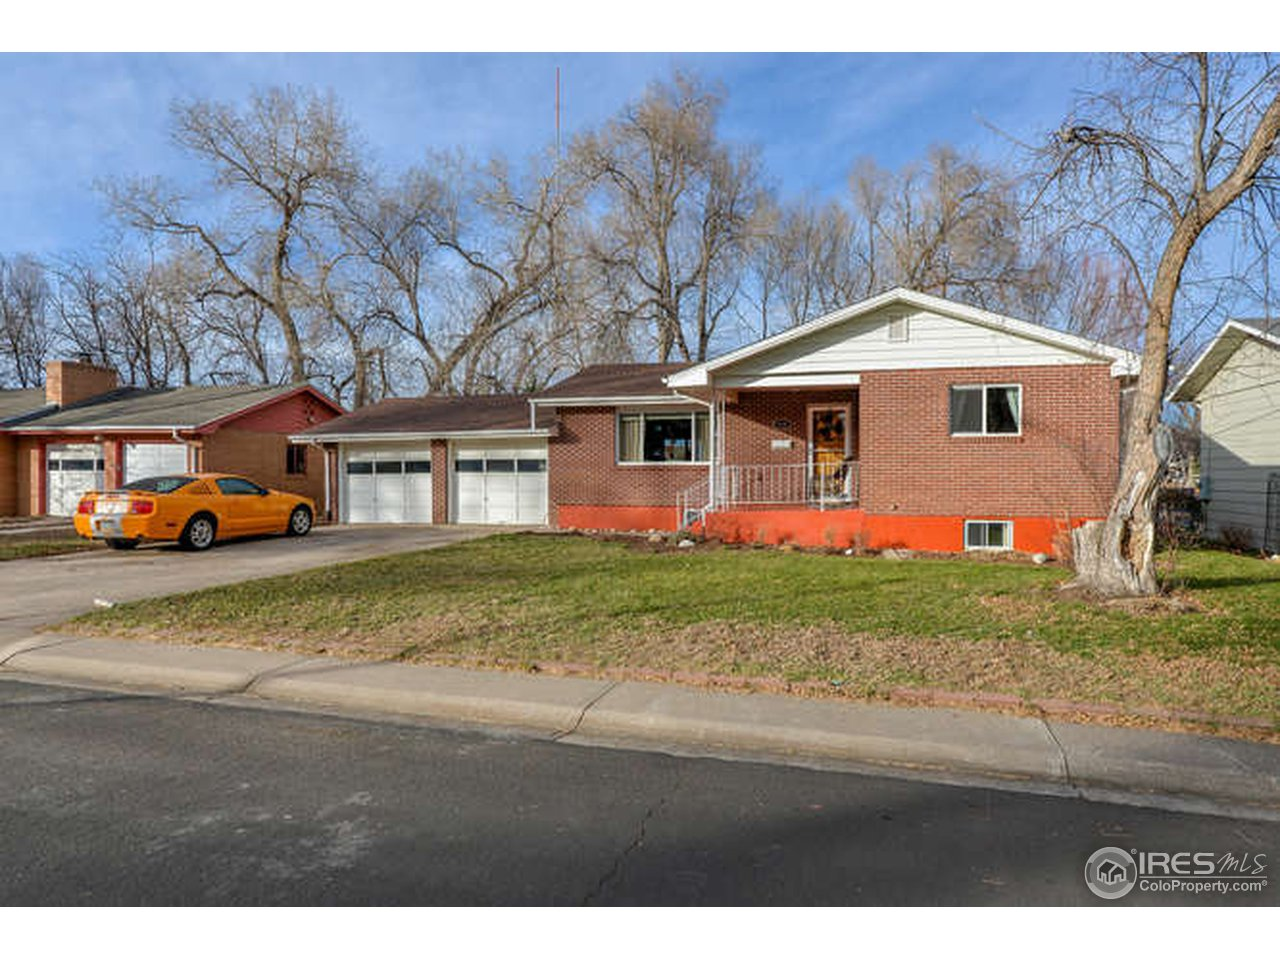 1550 Maple St, Fort Collins CO 80521